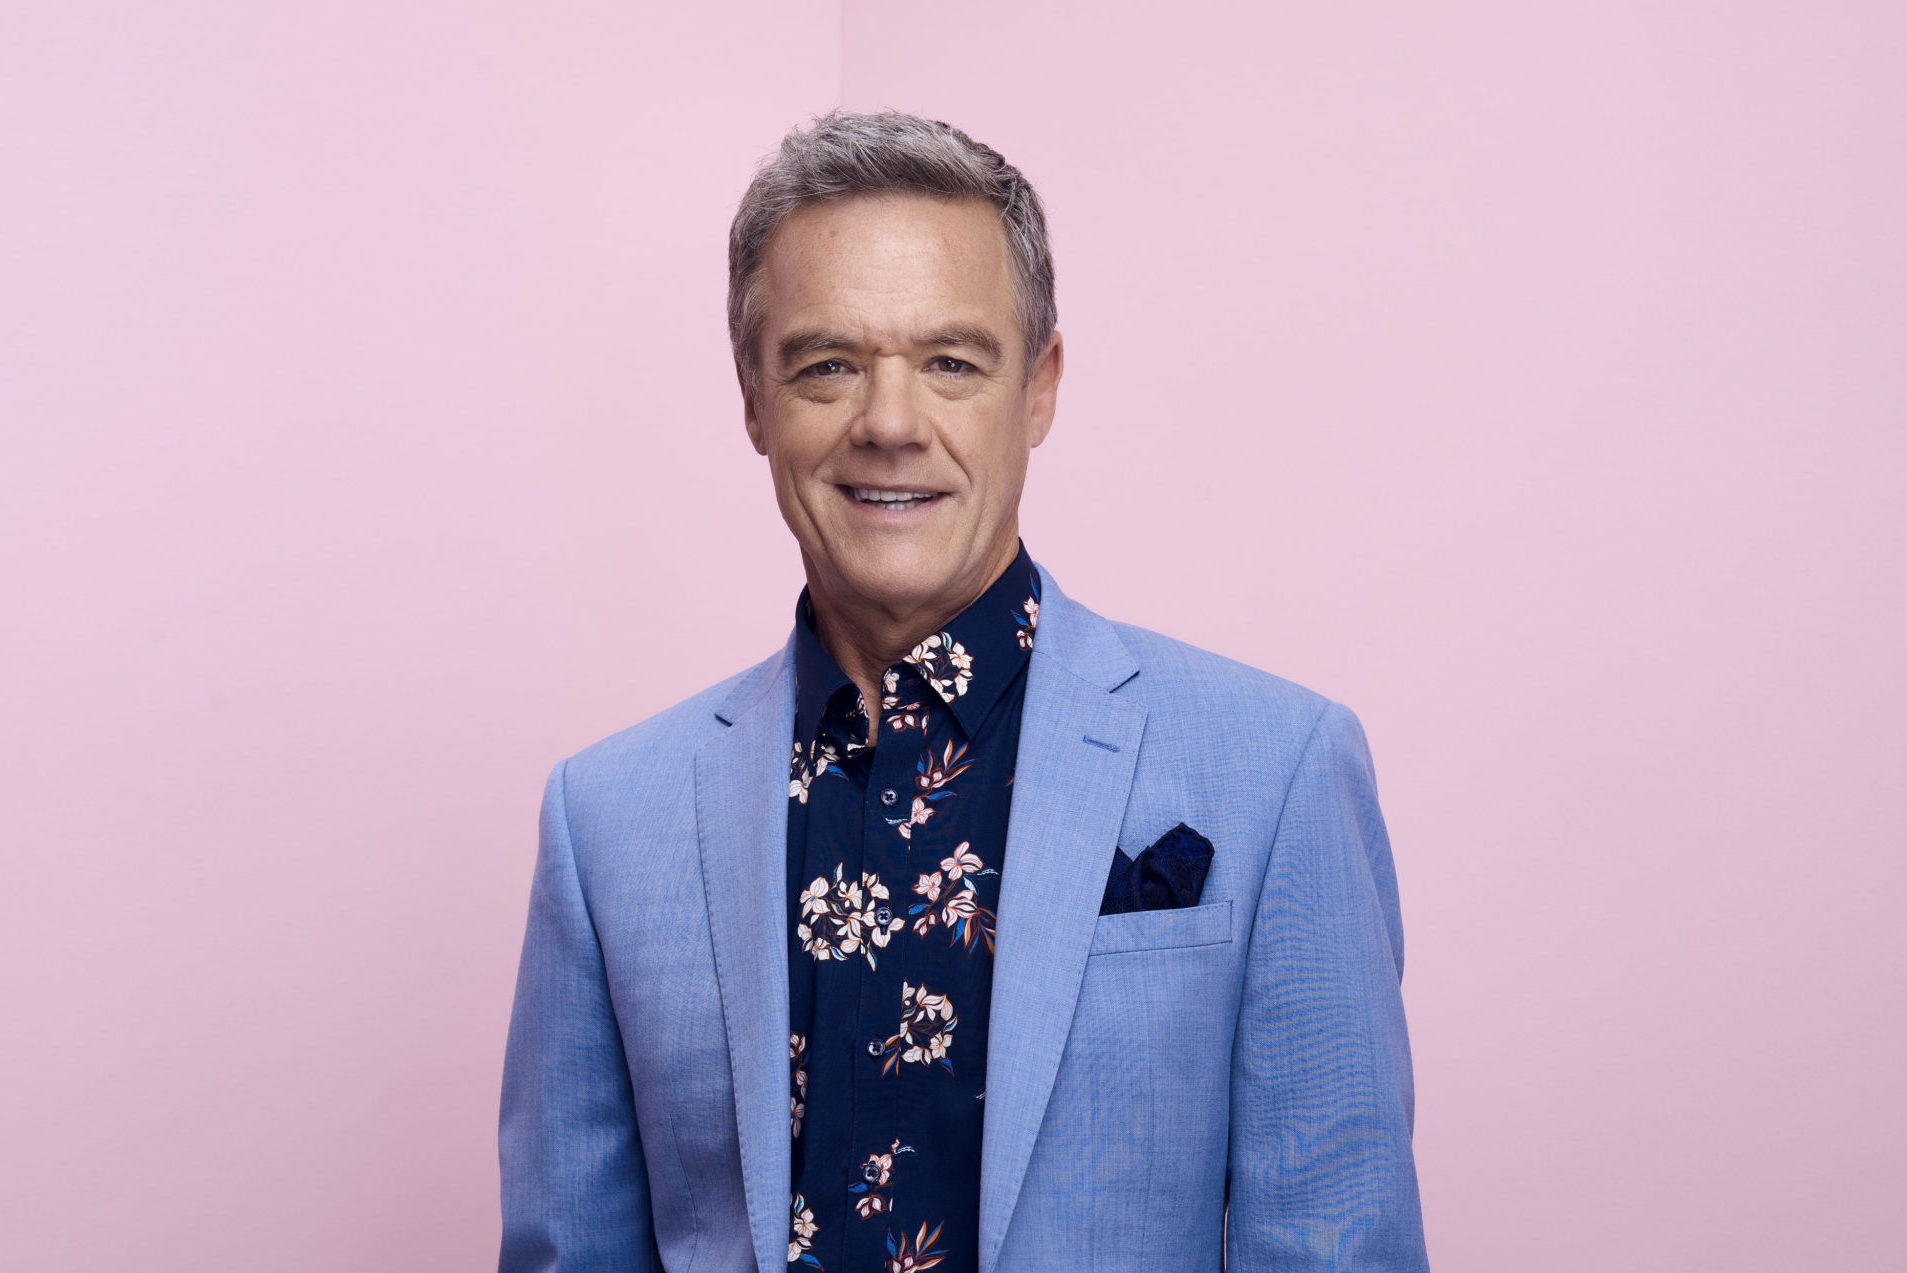 Neighbours casts Stefan Dennis's son in guest role